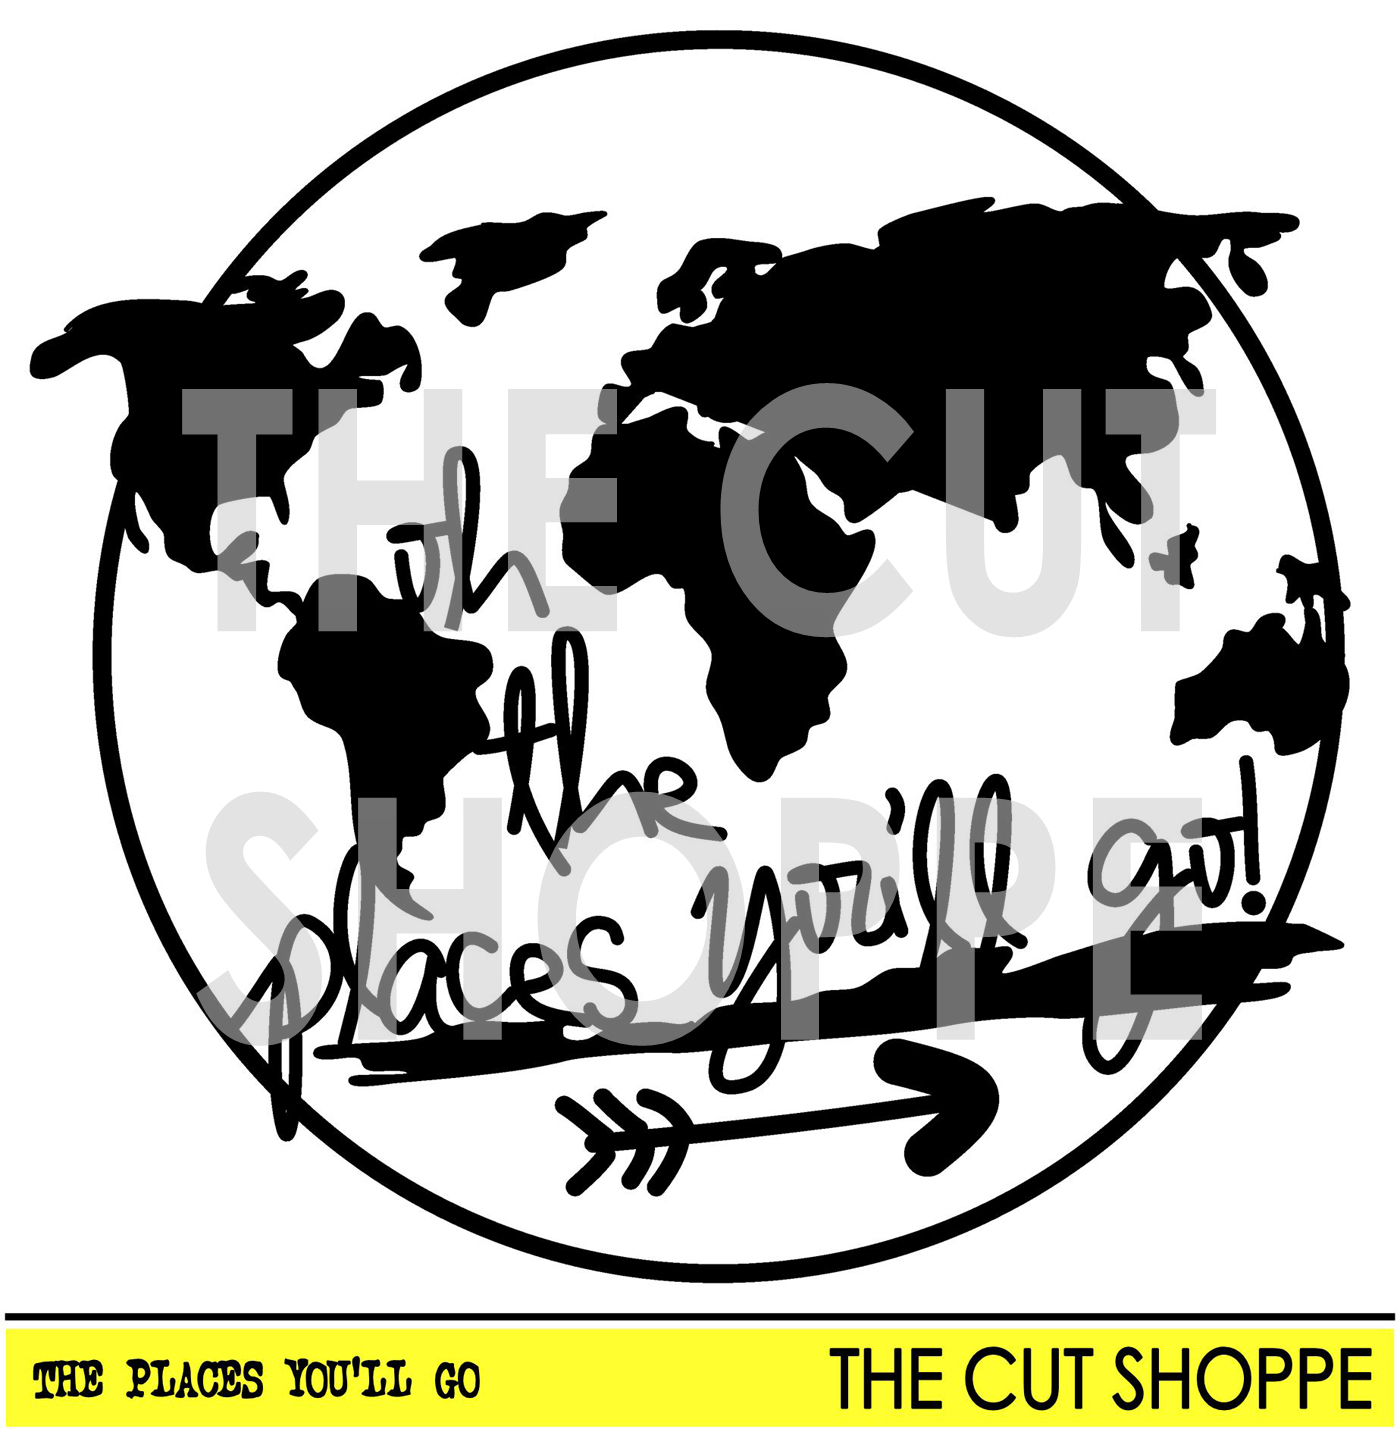 https://www.etsy.com/listing/198248563/the-places-youll-go-cut-file-is-a-world?ref=shop_home_active_2